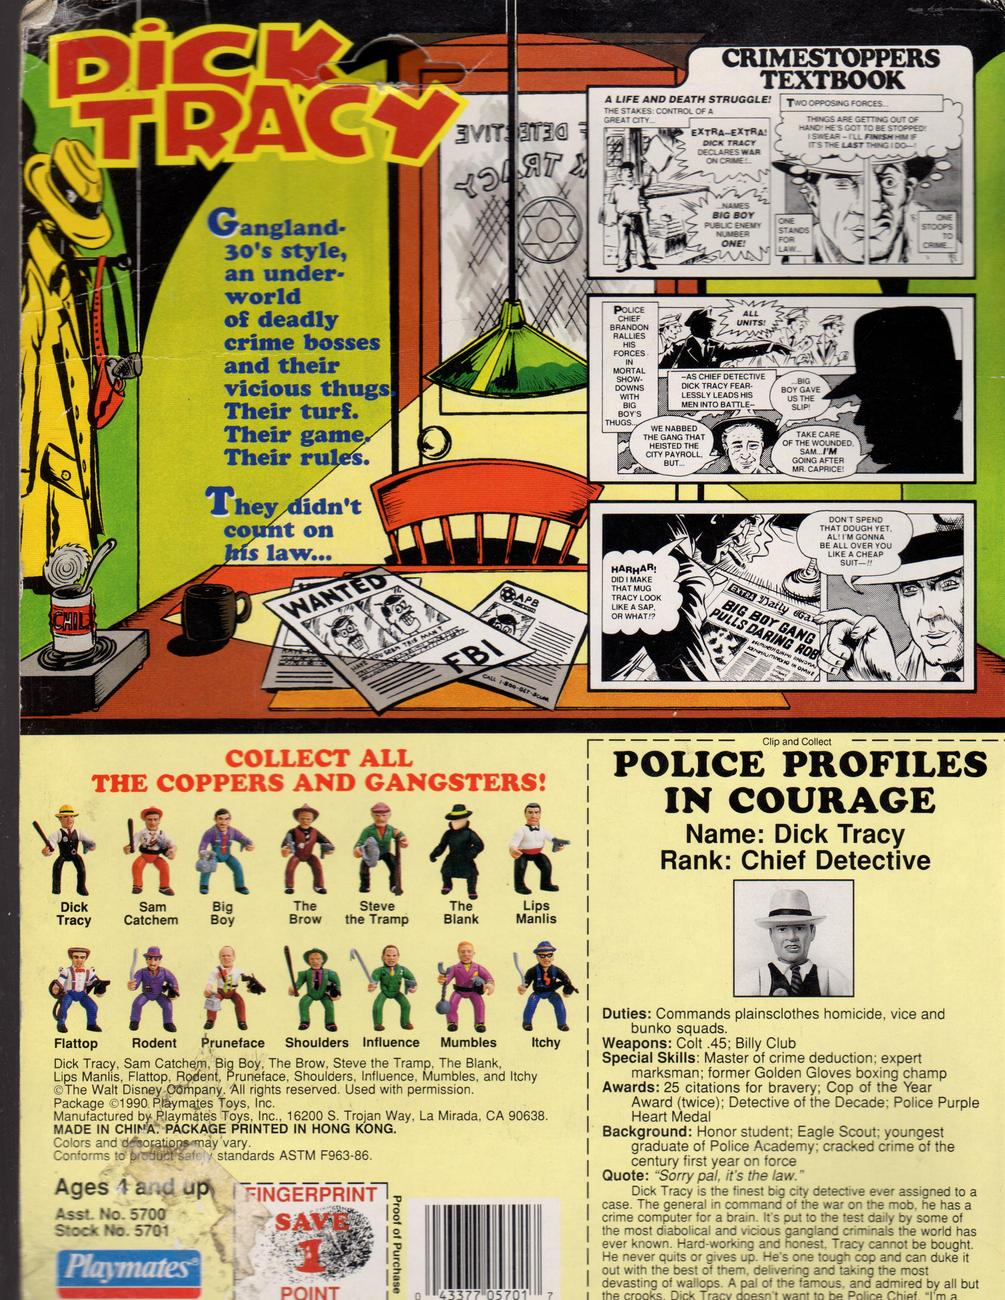 Dick Tracy Figure 118